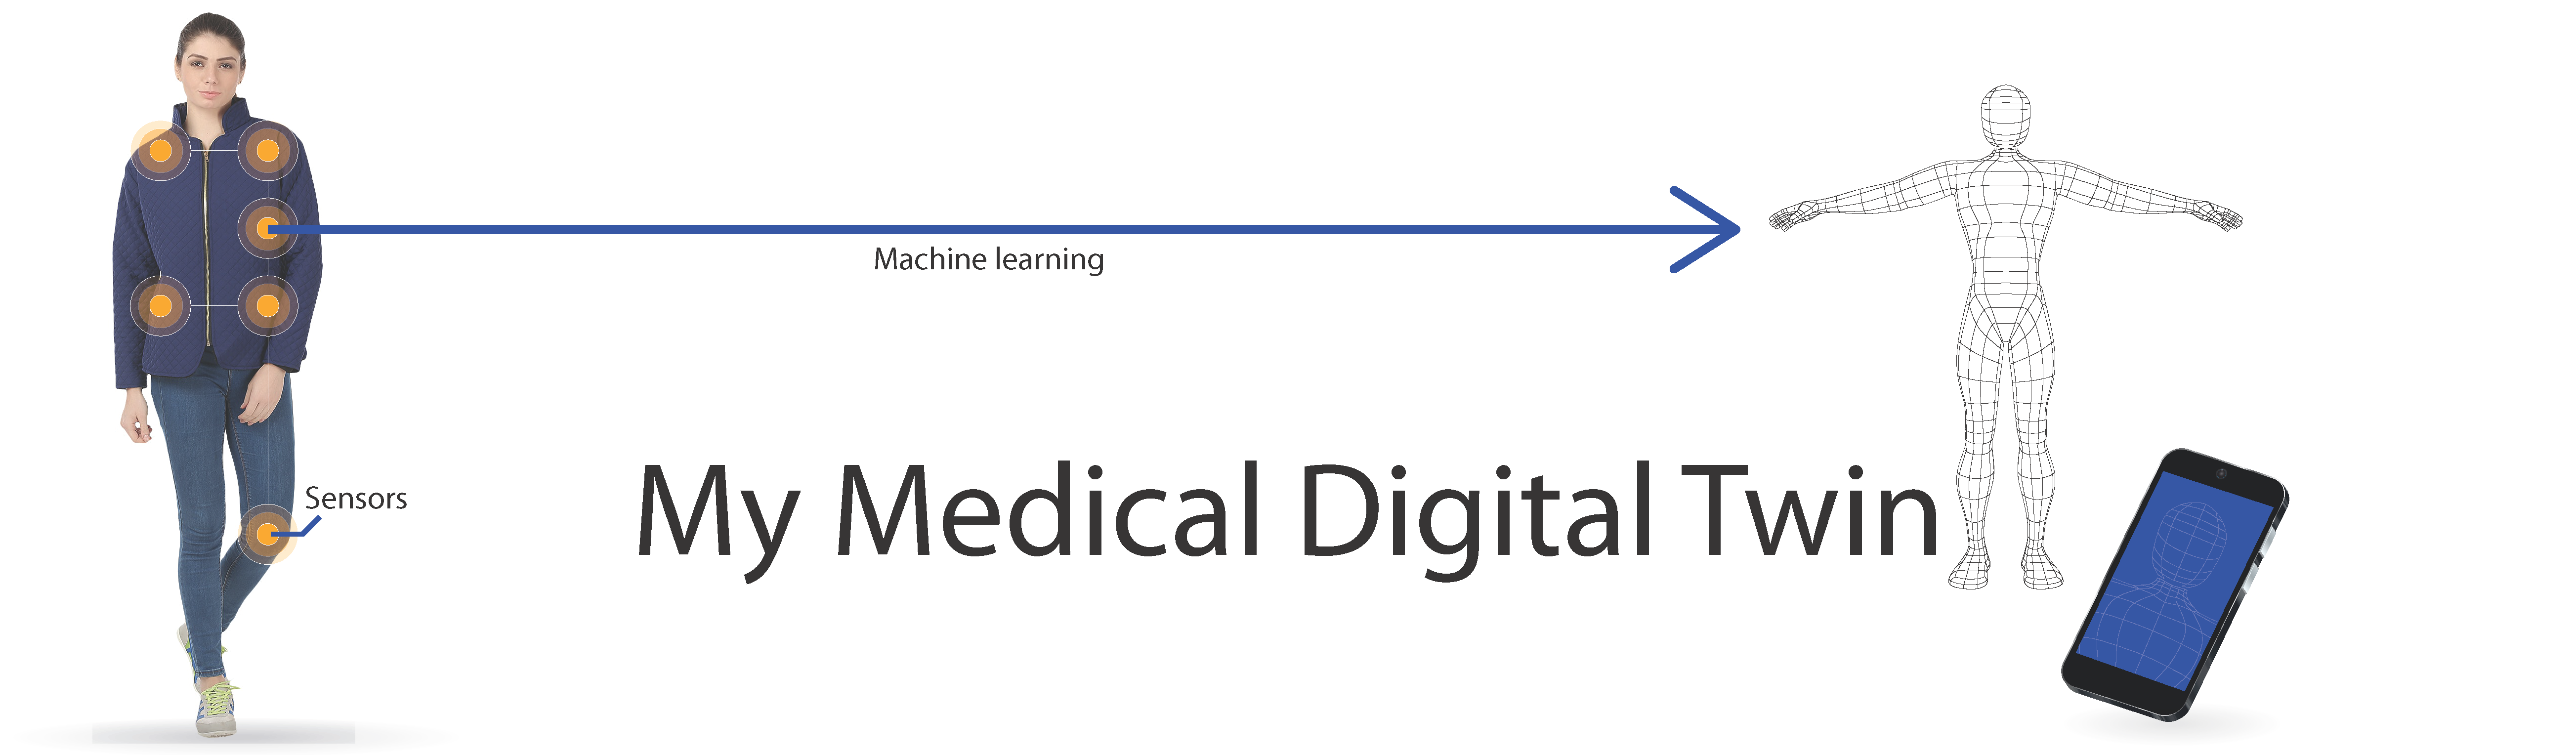 Toppbilde My Medical Digital Twin